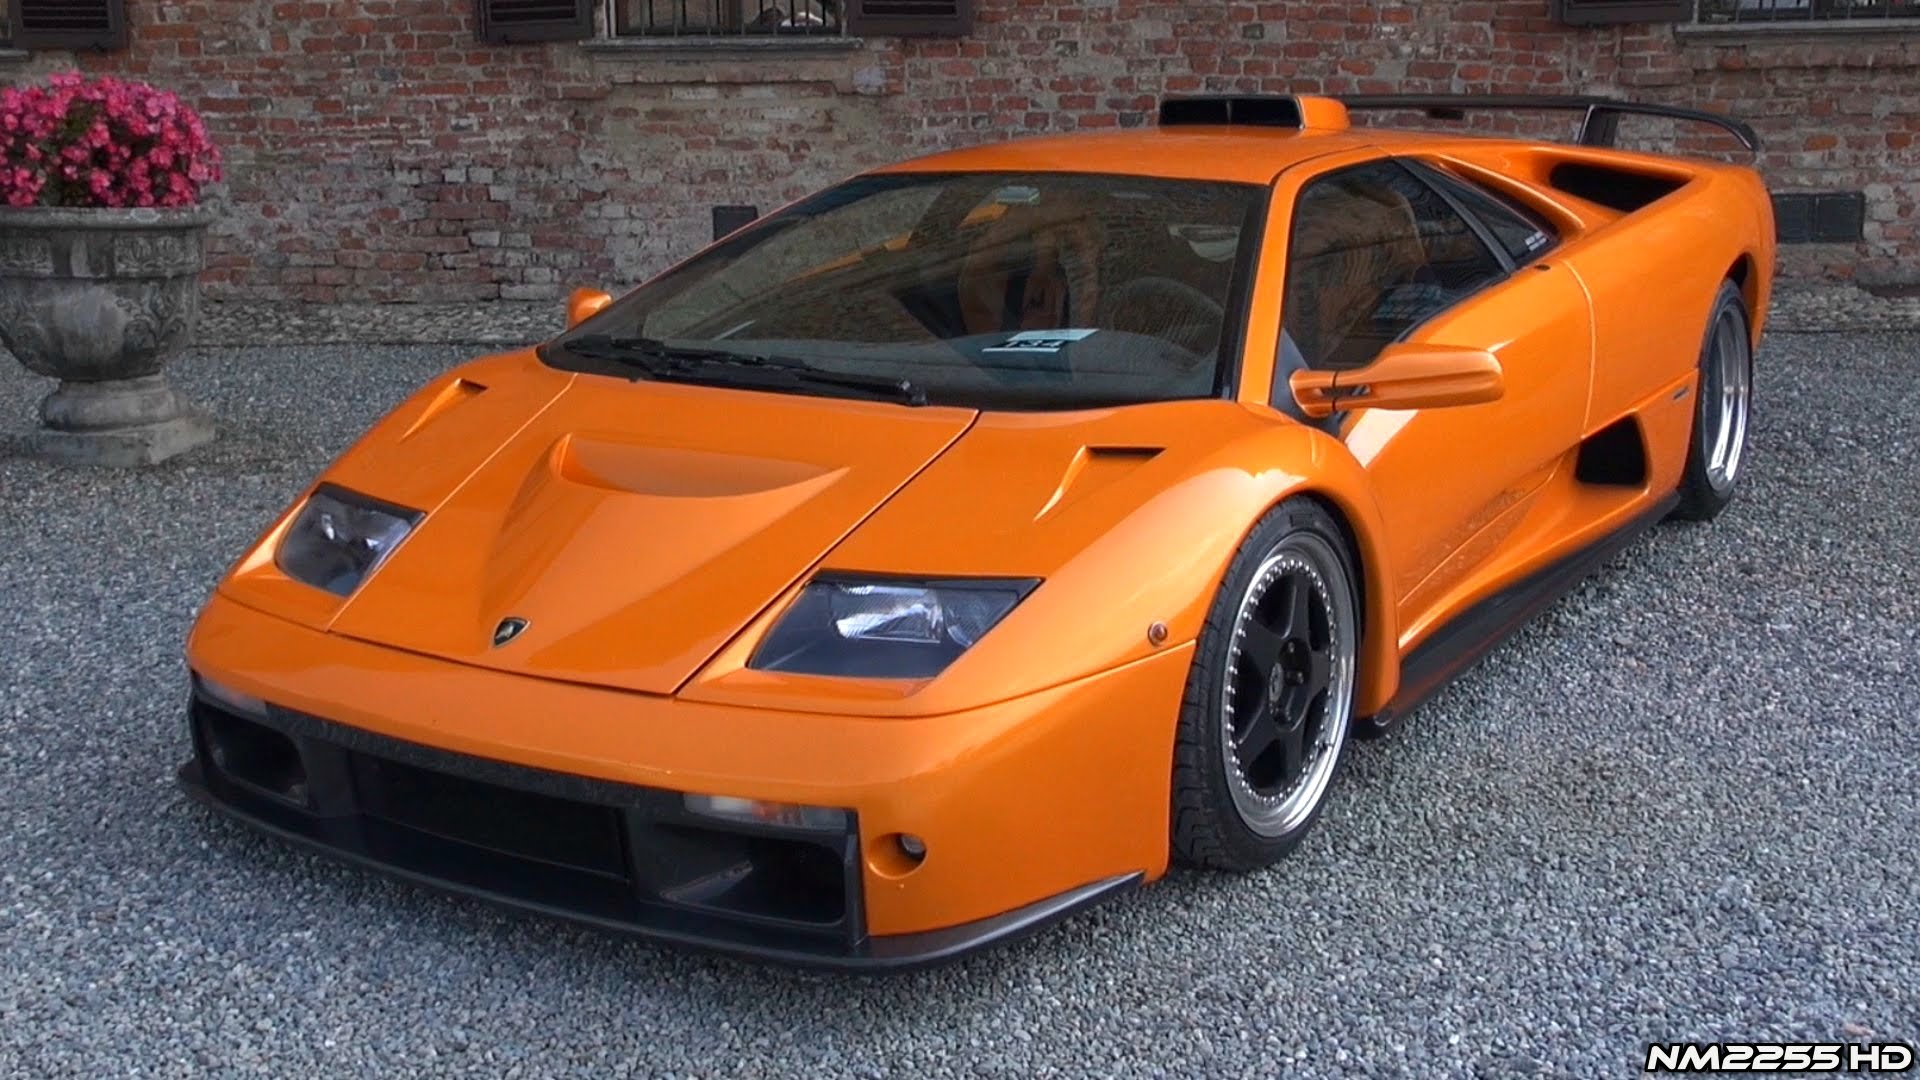 High Resolution Wallpaper | Lamborghini Diablo 1920x1080 px